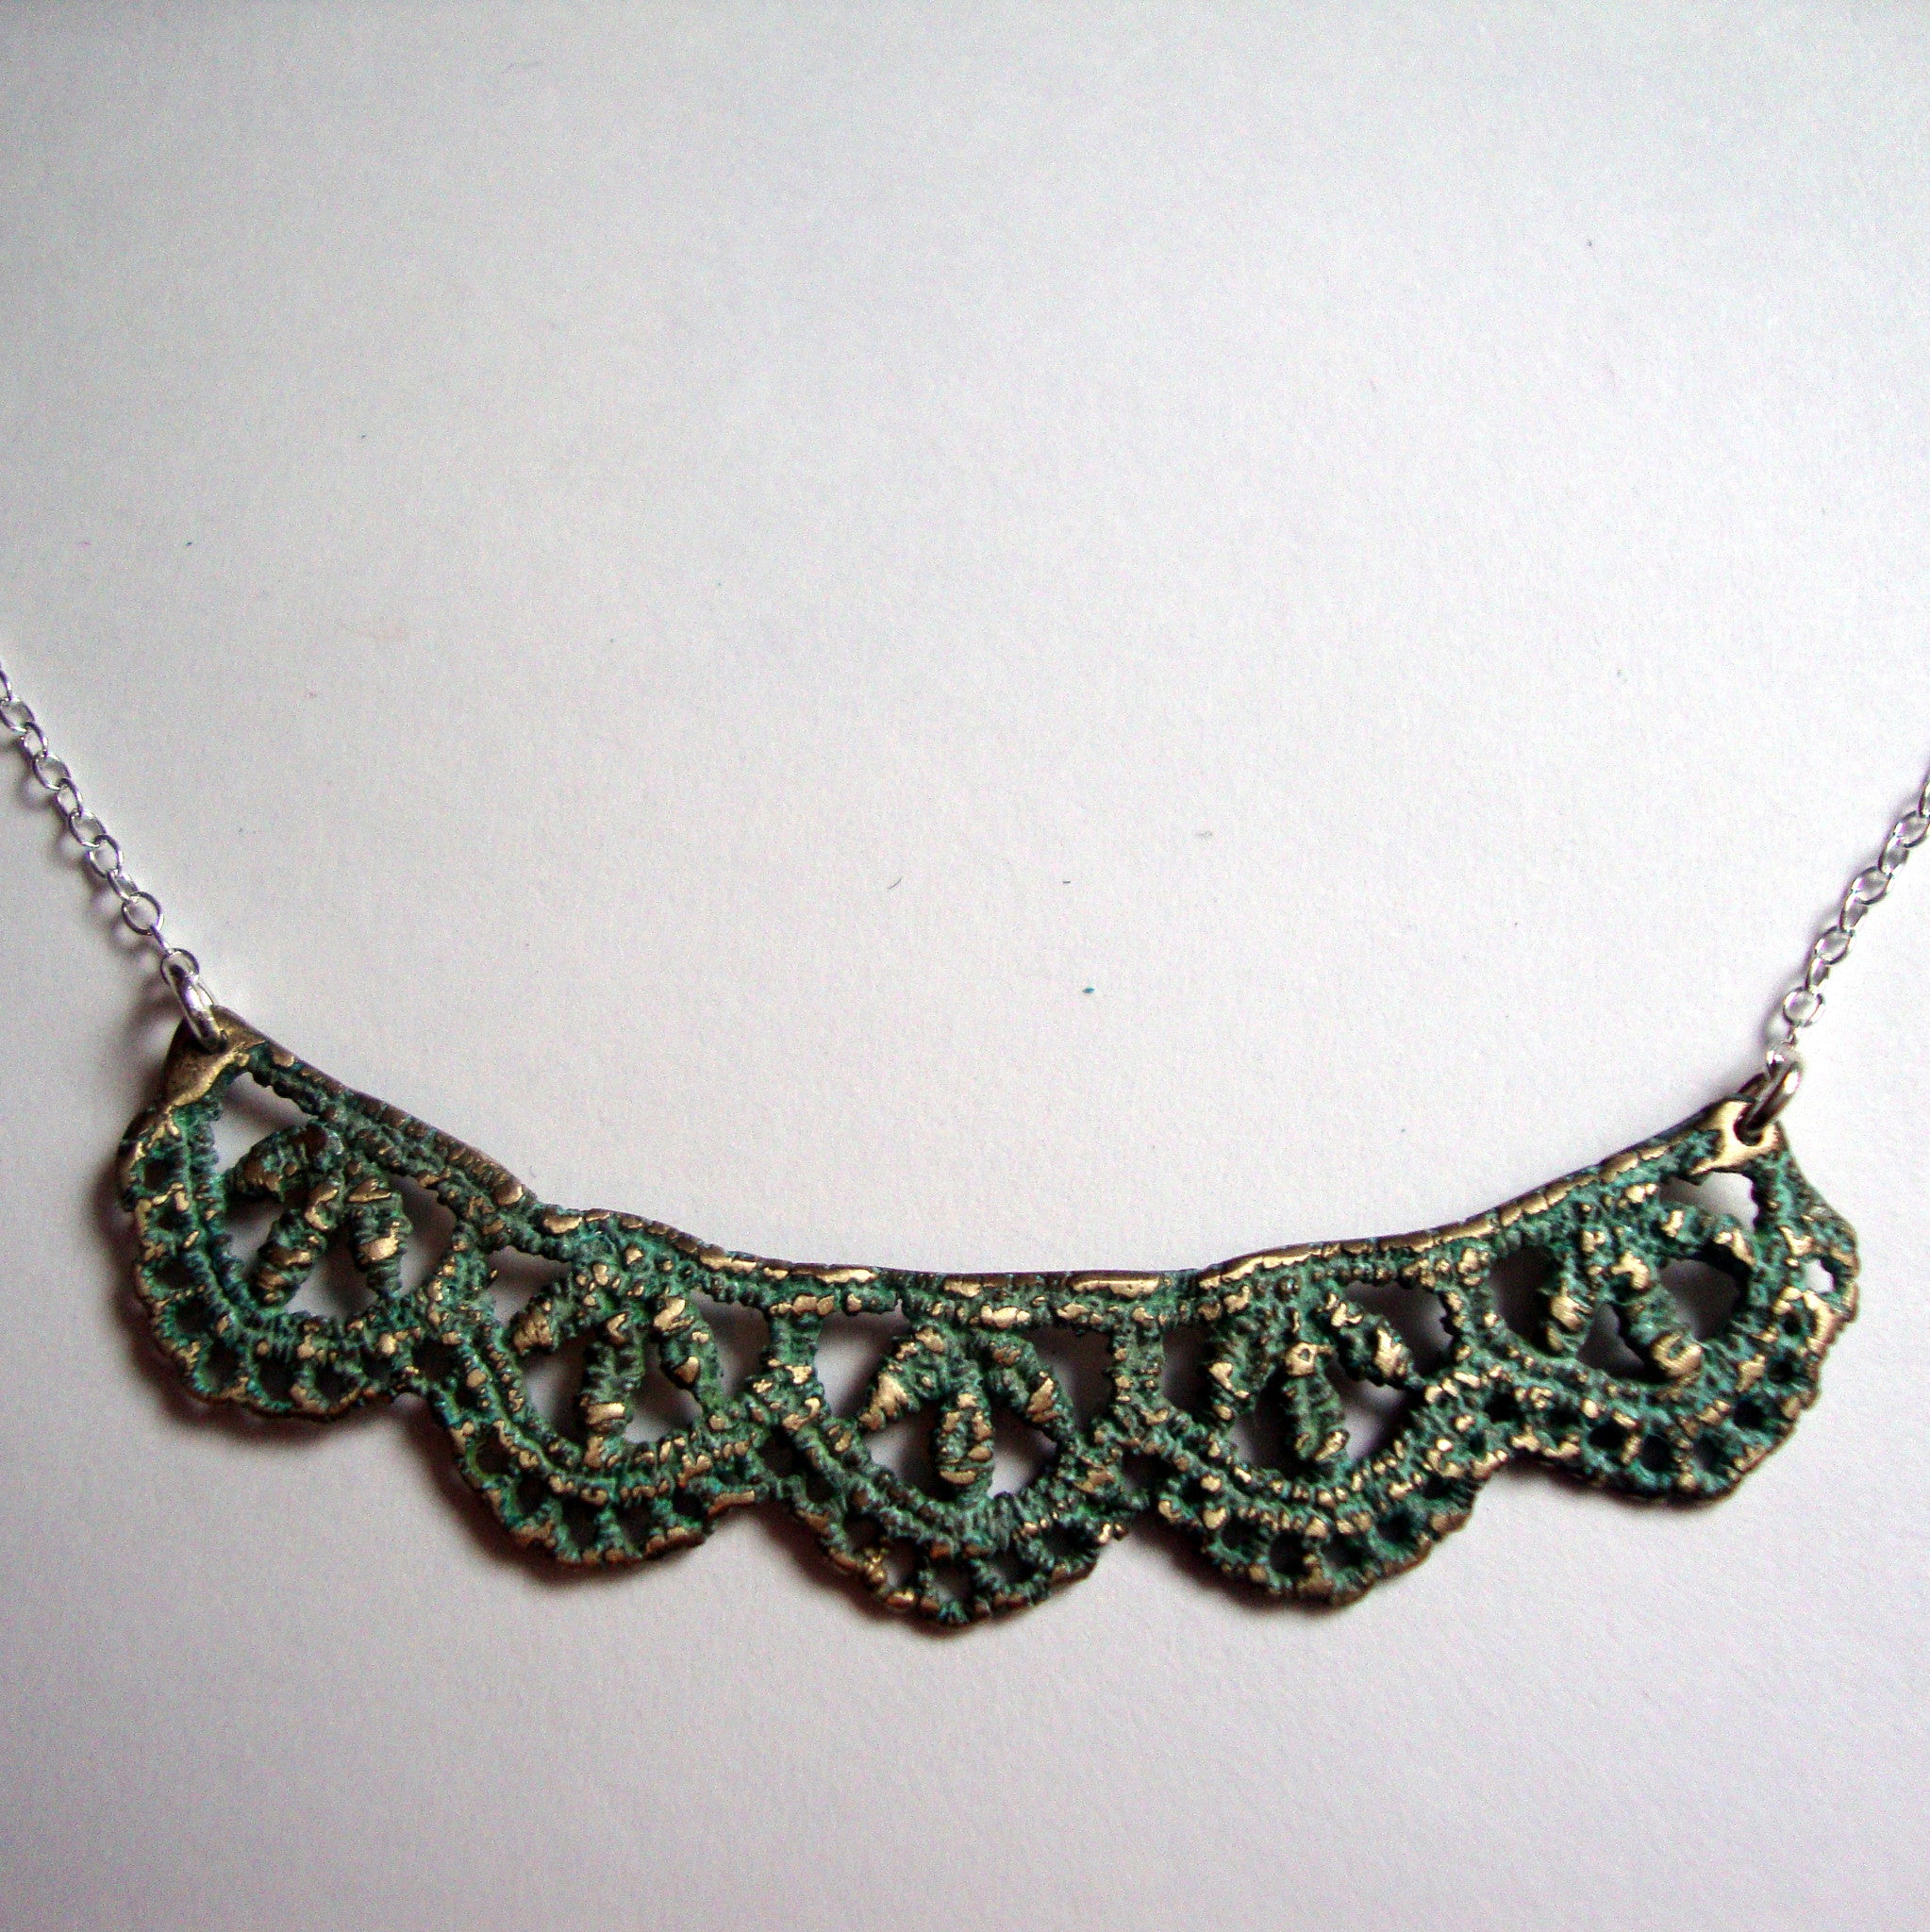 LEAF LACE NECKLACE handmade by SHEENA